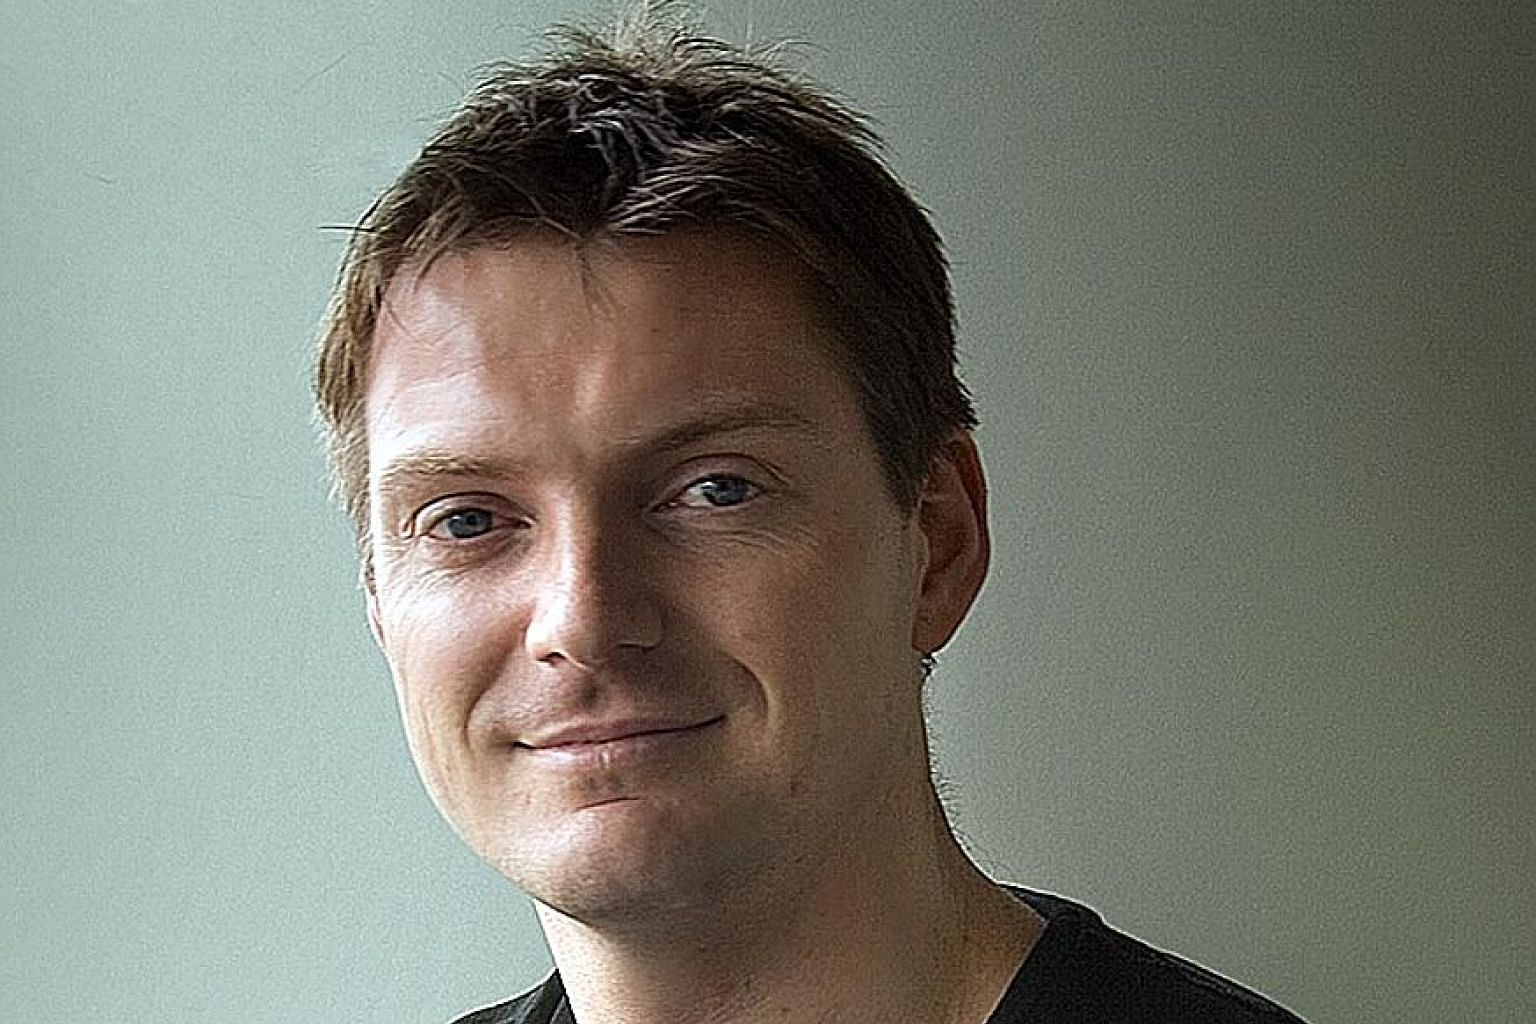 Mr Nigel Sumner (above) is creative director at Industrial Light & Magic Singapore.